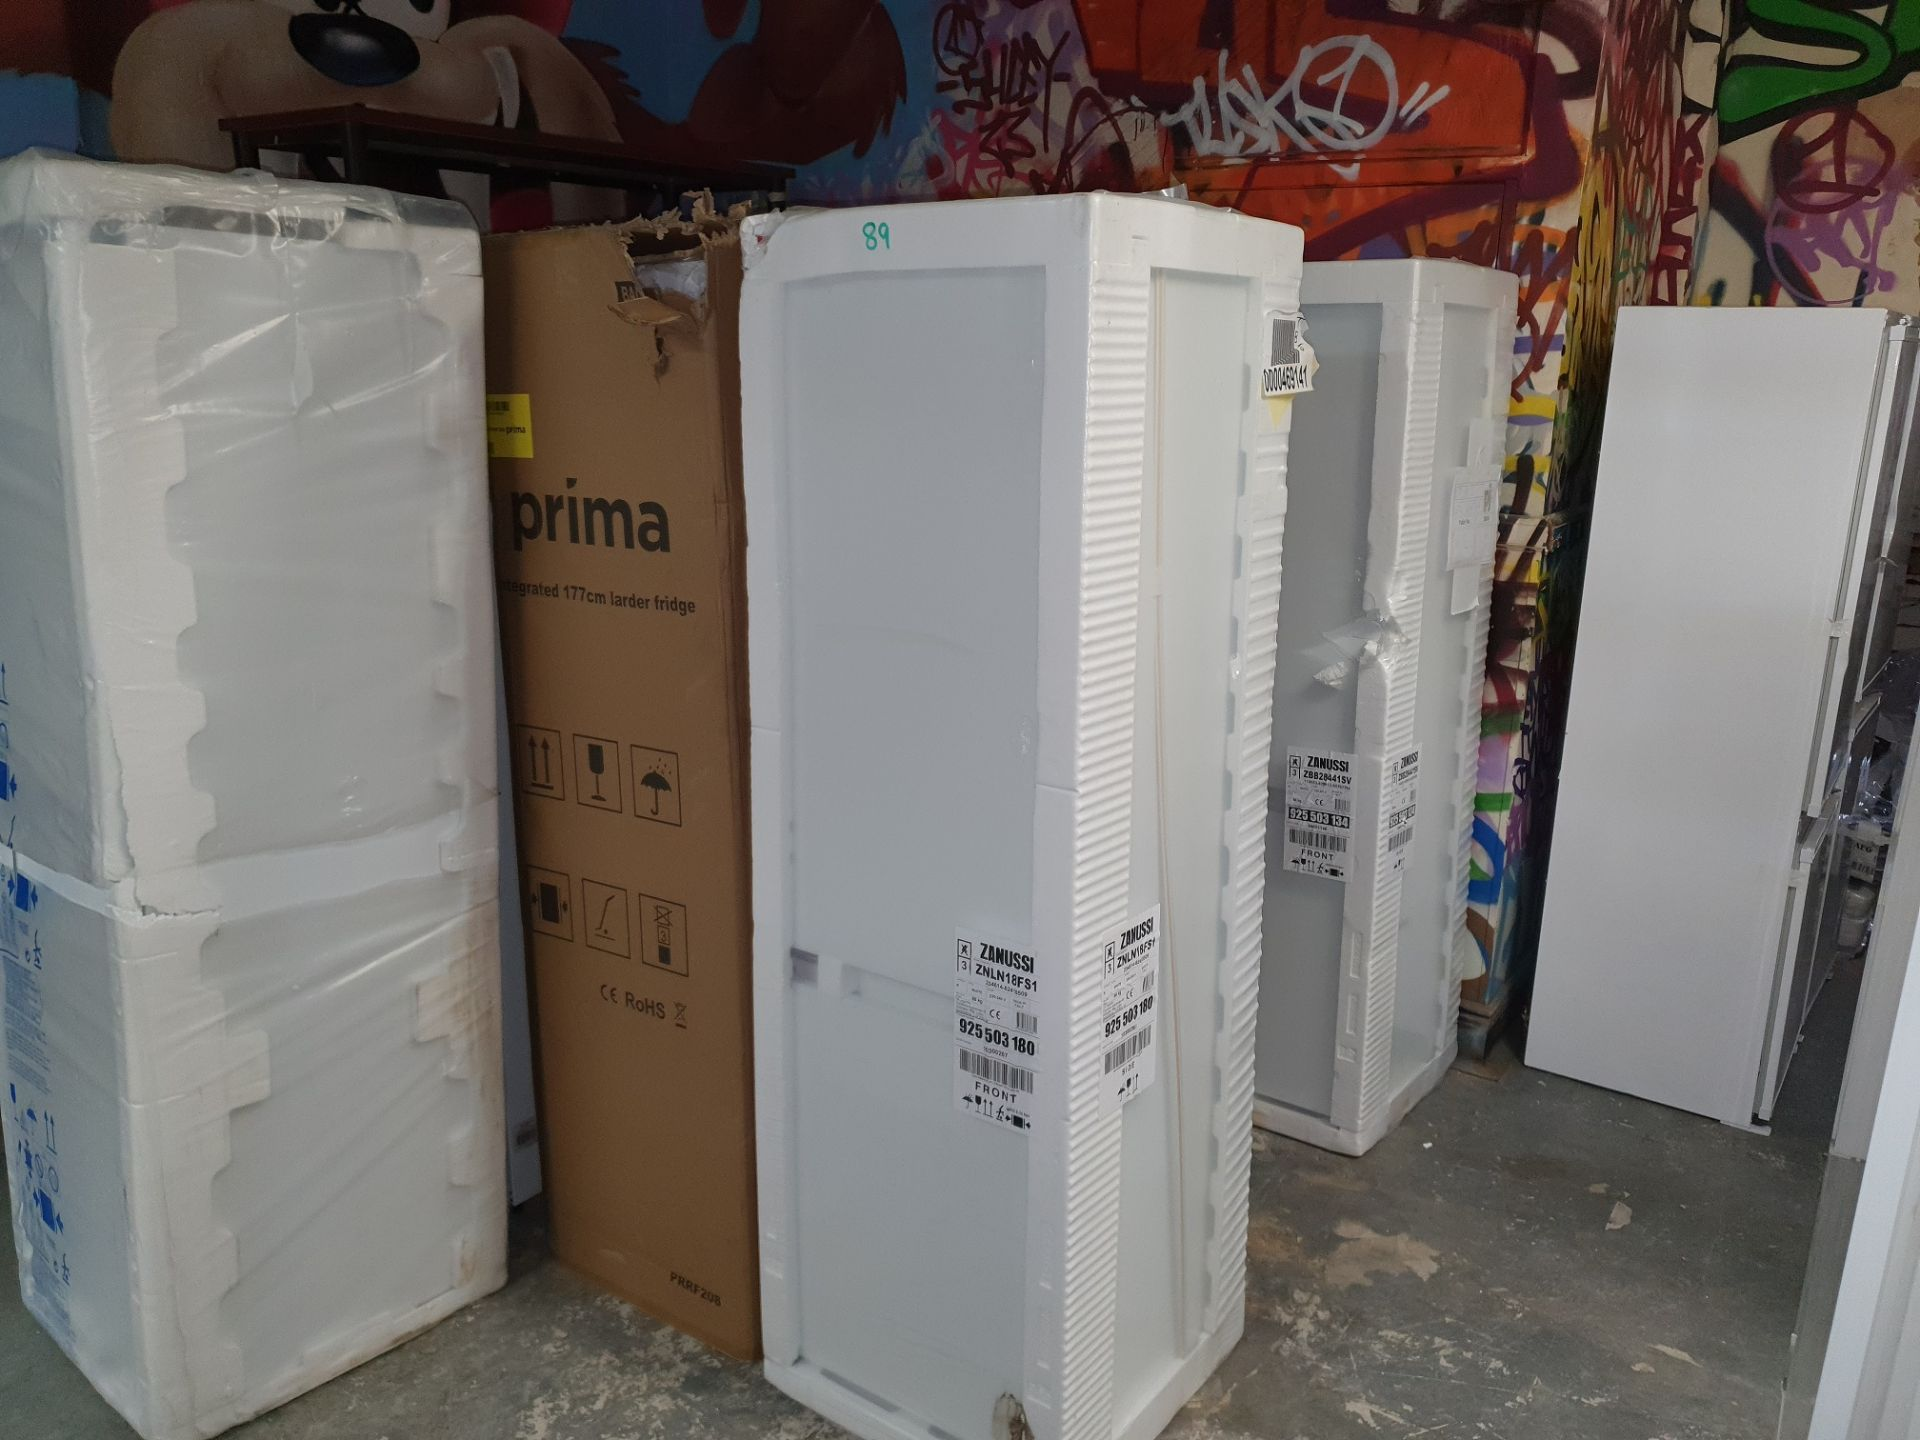 NEW/GRADED AND UNPACKAGED Prima PRRF500 50/50 * Frost Free * Integrated Fridge Freezer (Brand new - Image 3 of 14